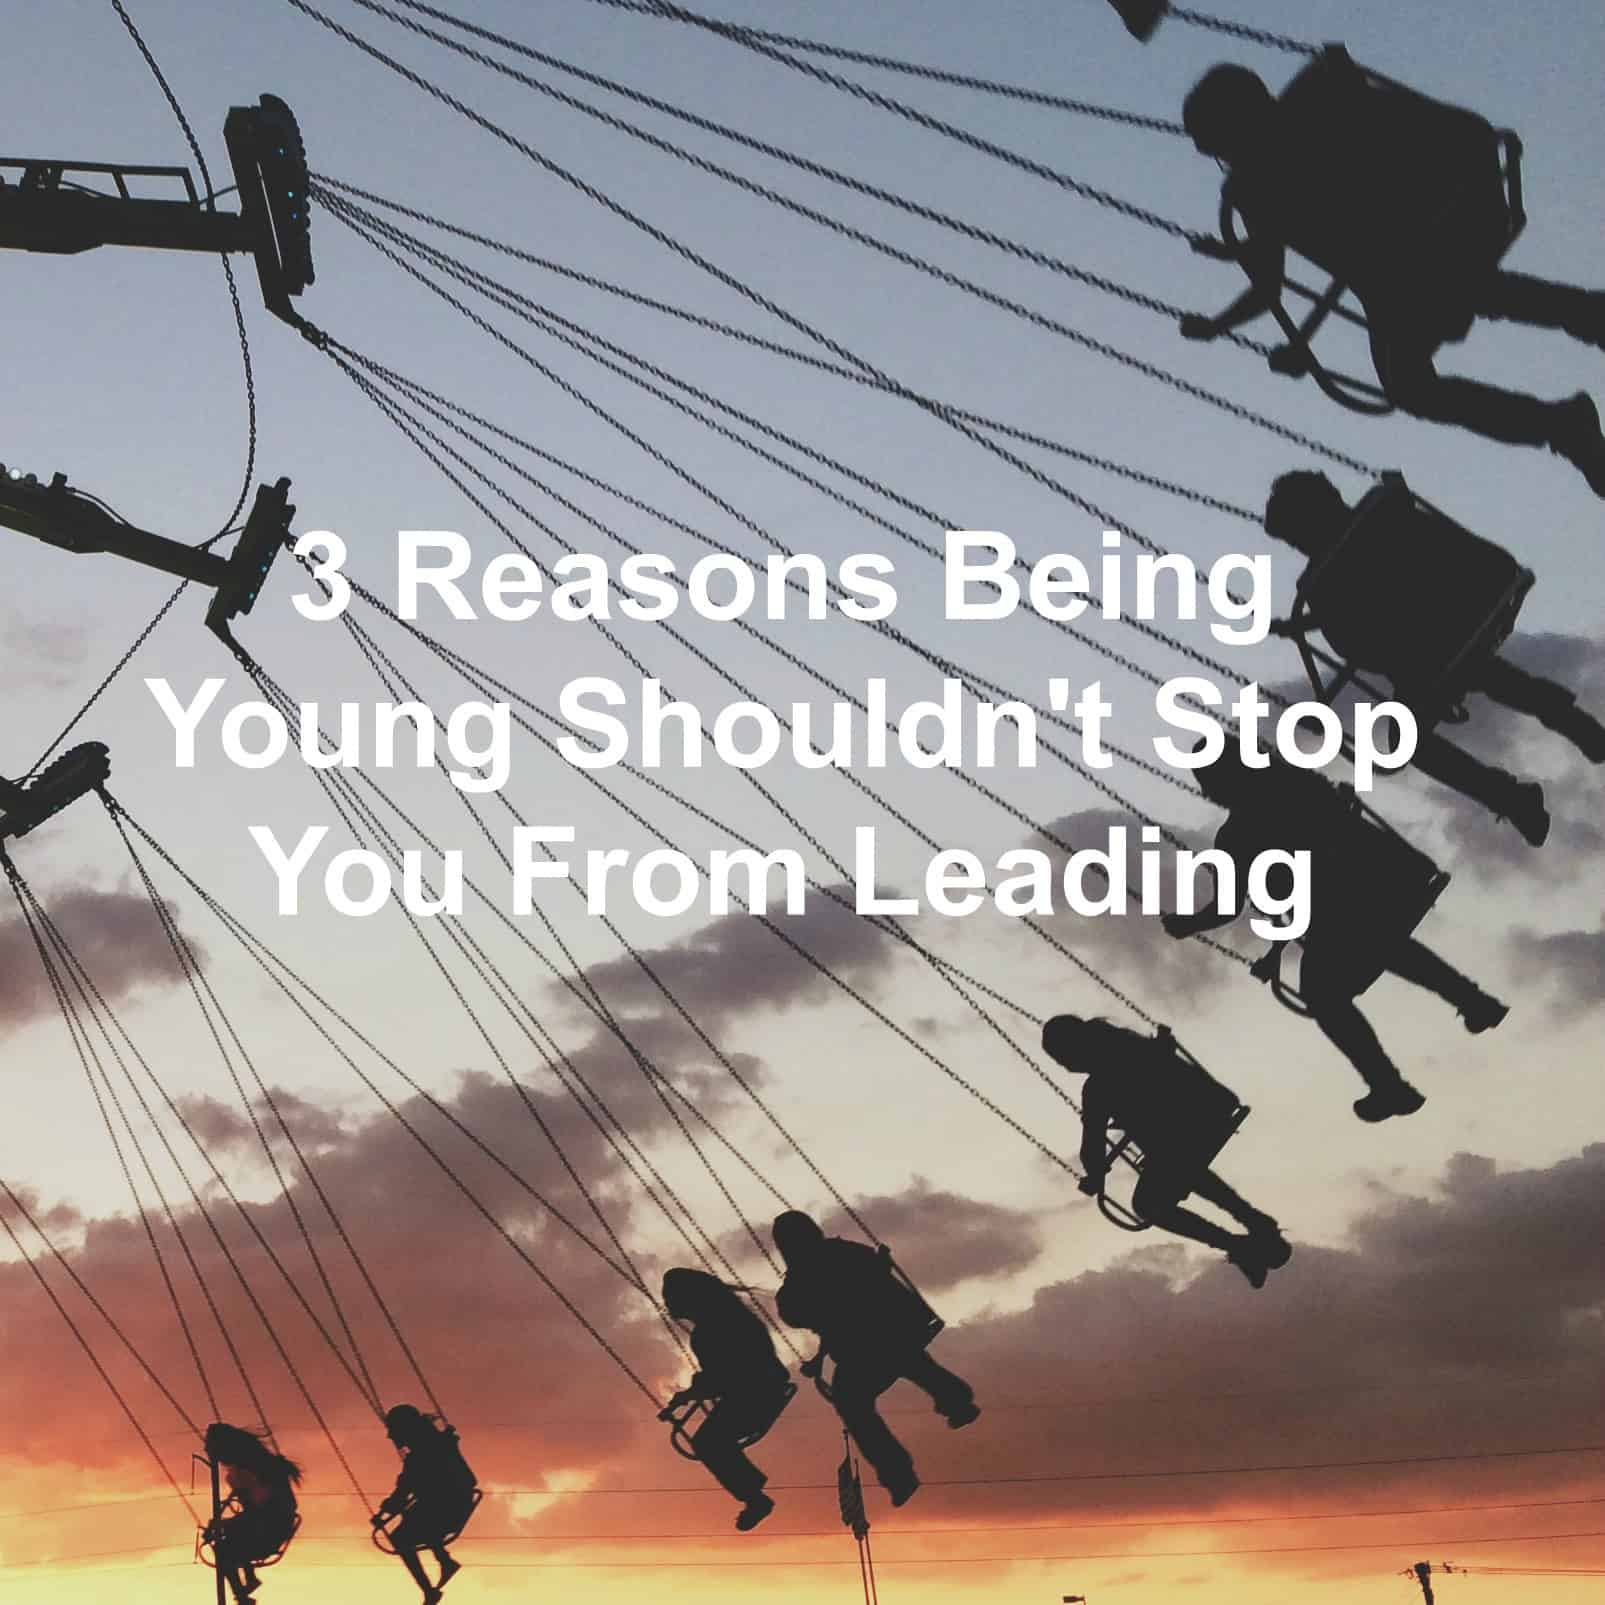 Youth shouldn't stop you from leading